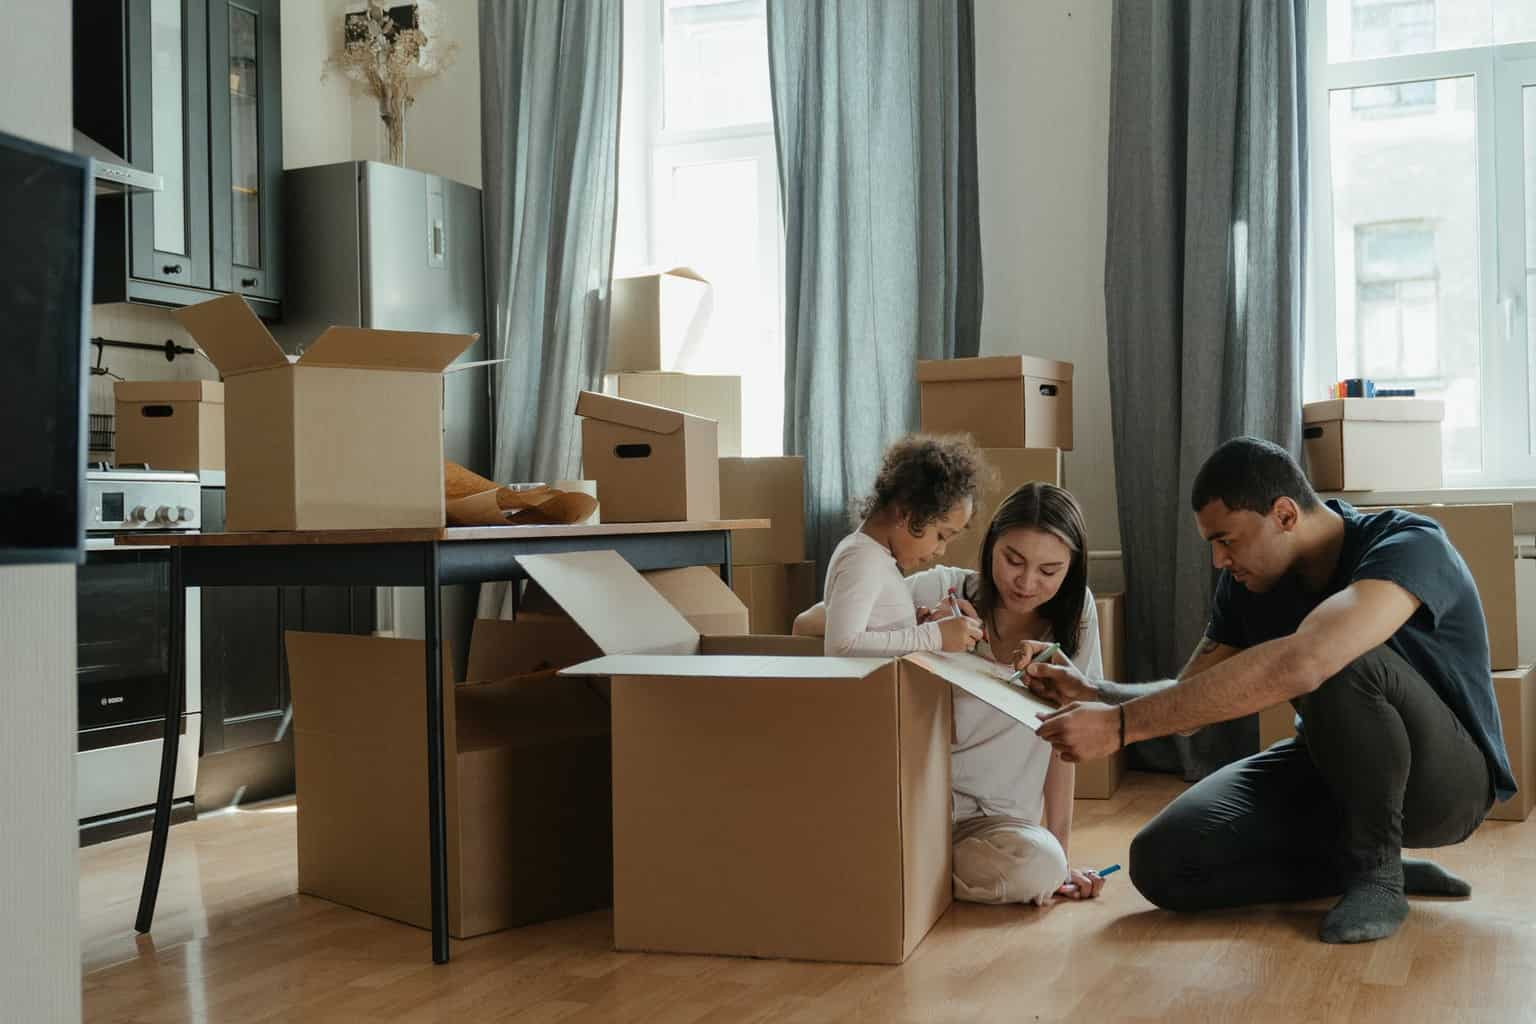 House move tips and tricks